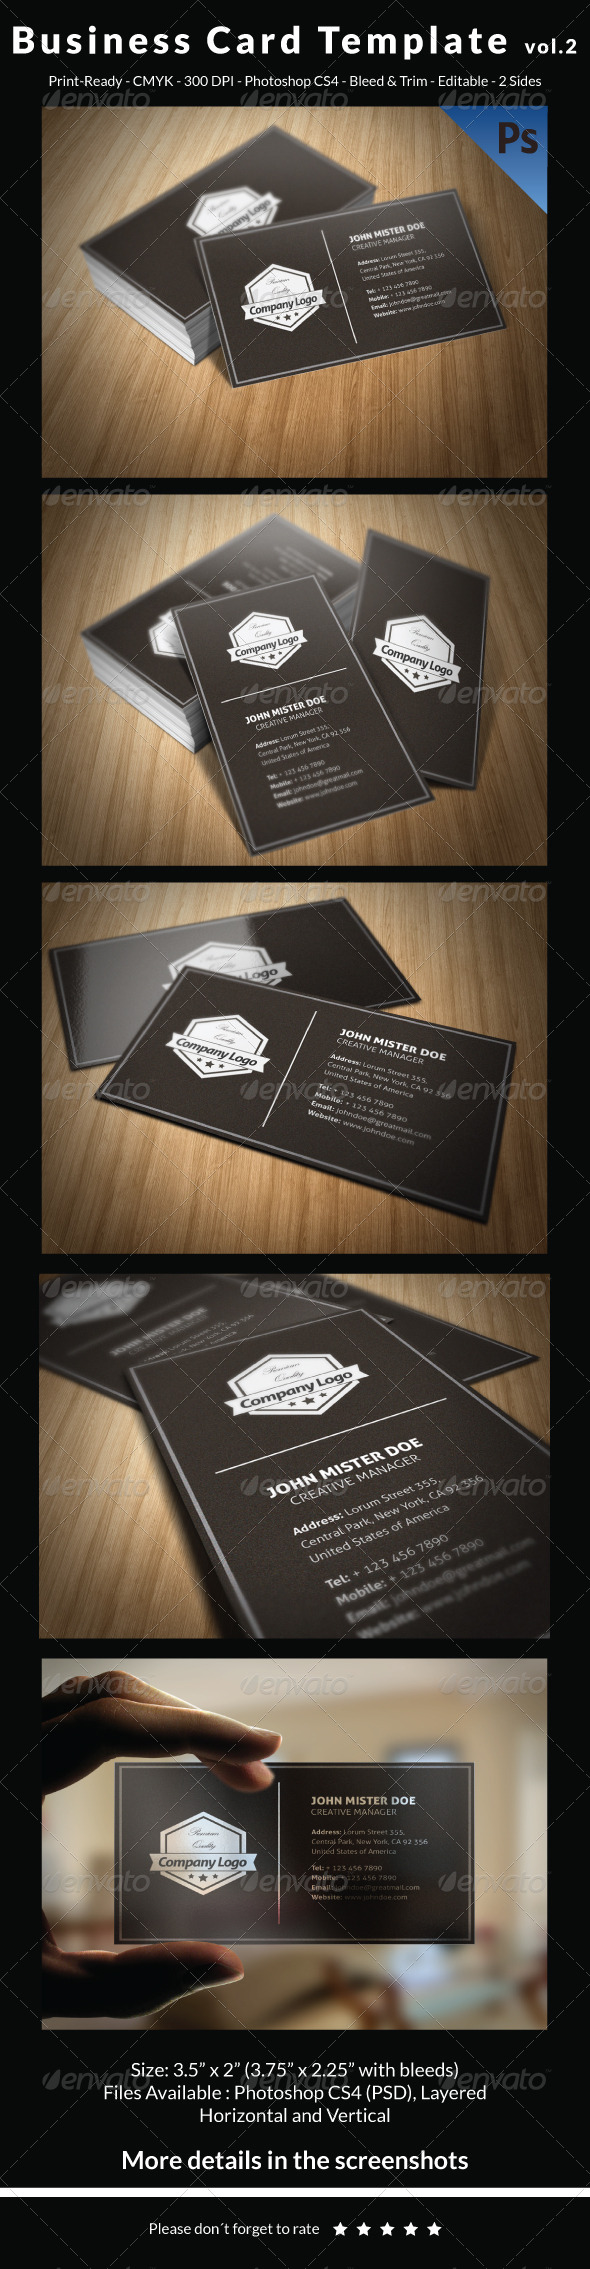 GraphicRiver Business Card Template vol.2 7167474